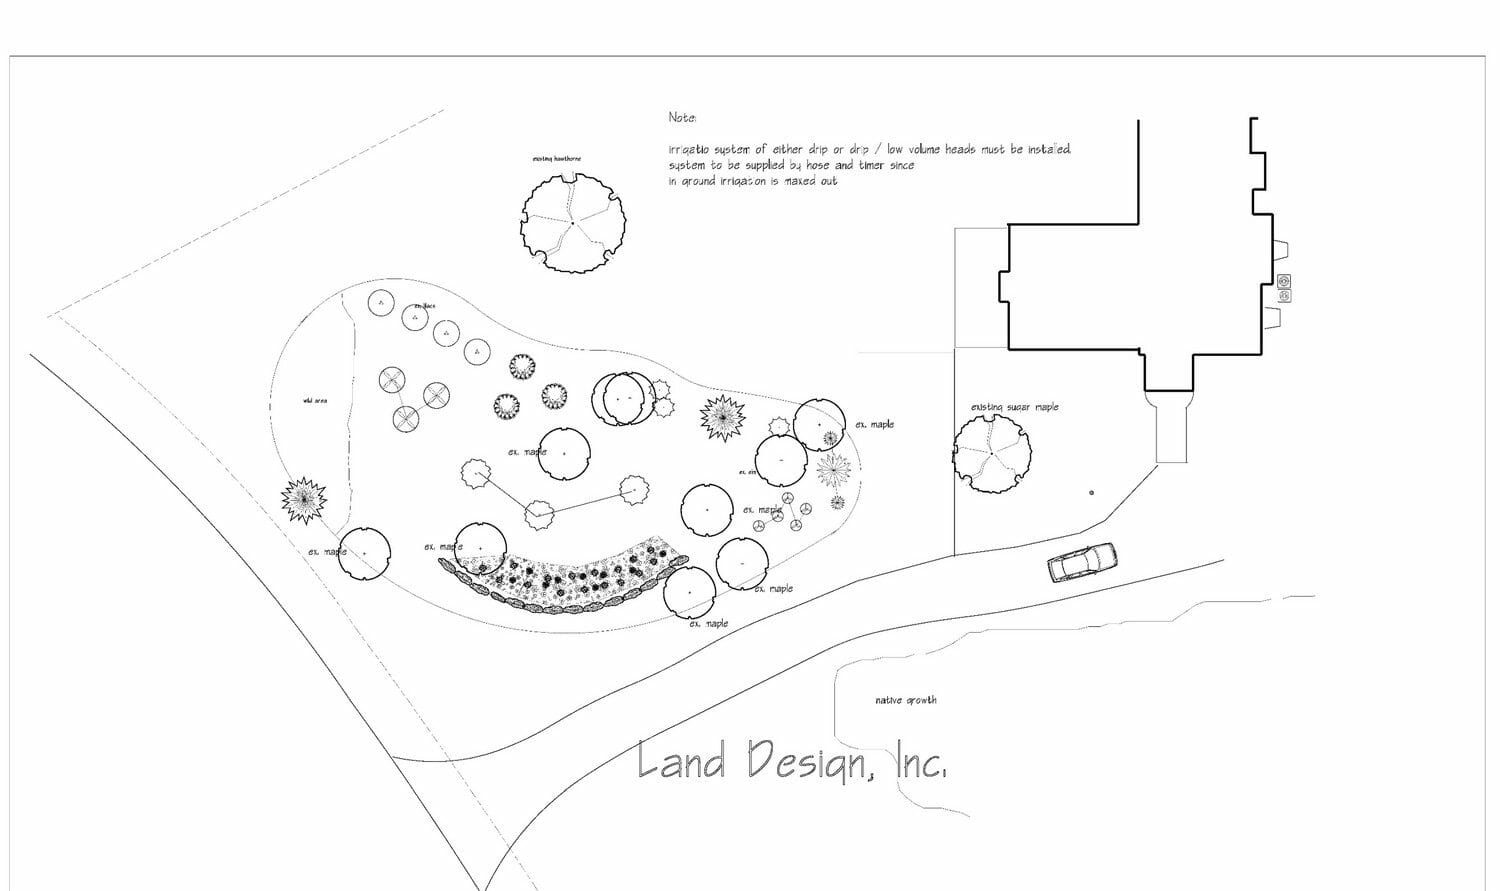 Latham NY woodland garden plan drawing 1500x891 - Landscape Design Plan packages